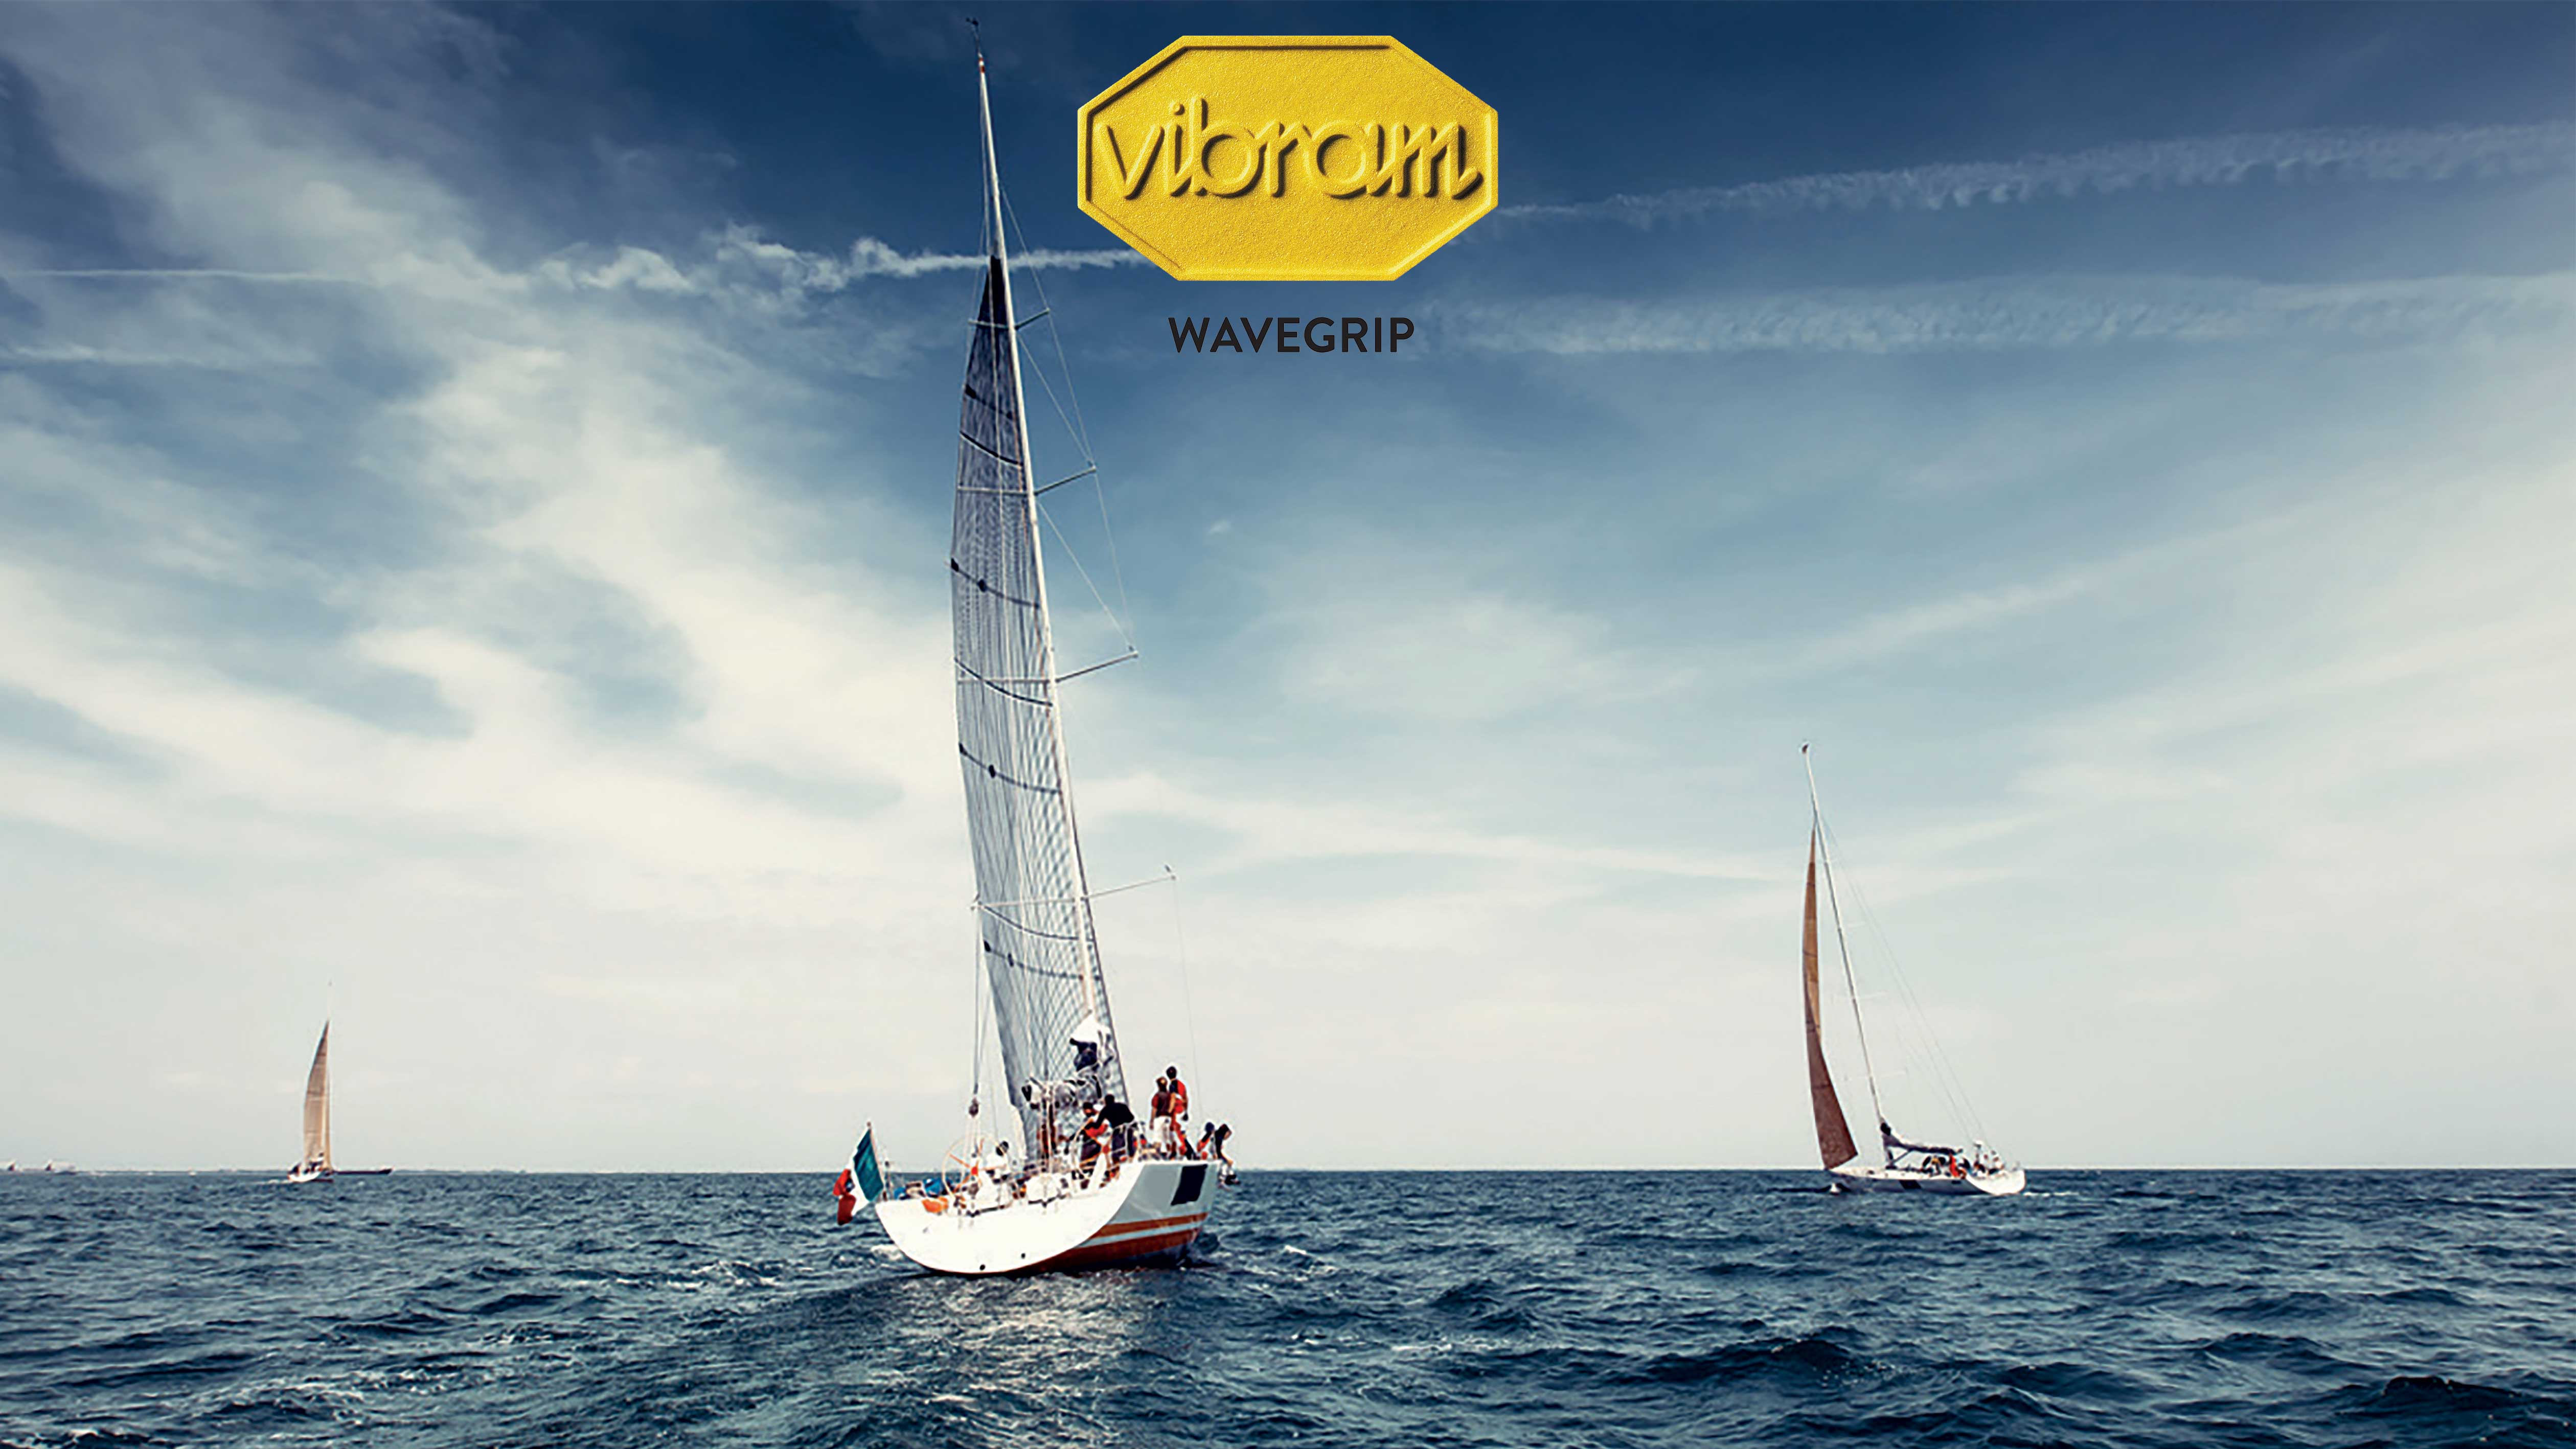 merrell shoes shop in singapore yacht